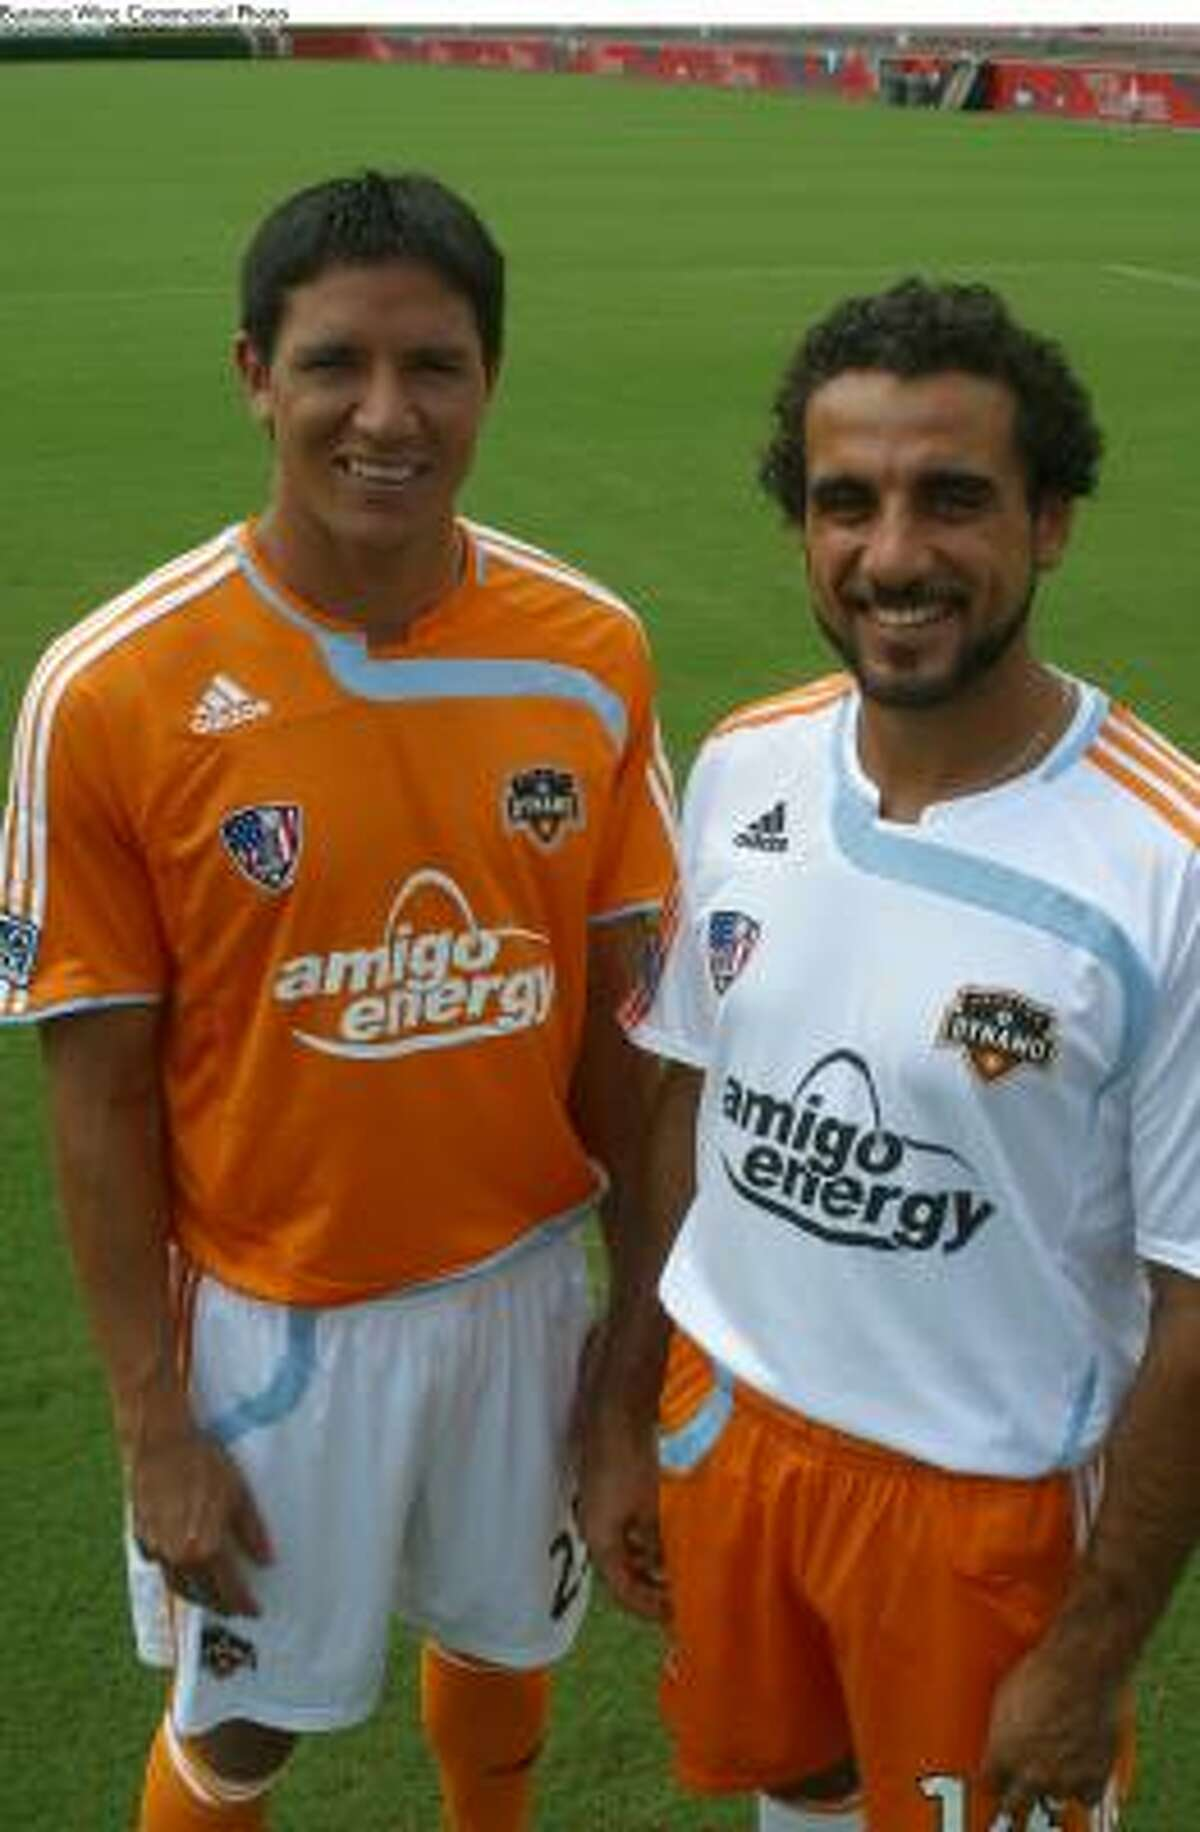 Brian Ching, left, and Dwayne De Rosario model new jerseys displaying the Amigo Energy logo, the team's official jersey sponsor. The Dynamo will take the field with their new look for the first time at Sunday's home game against FC Dallas.